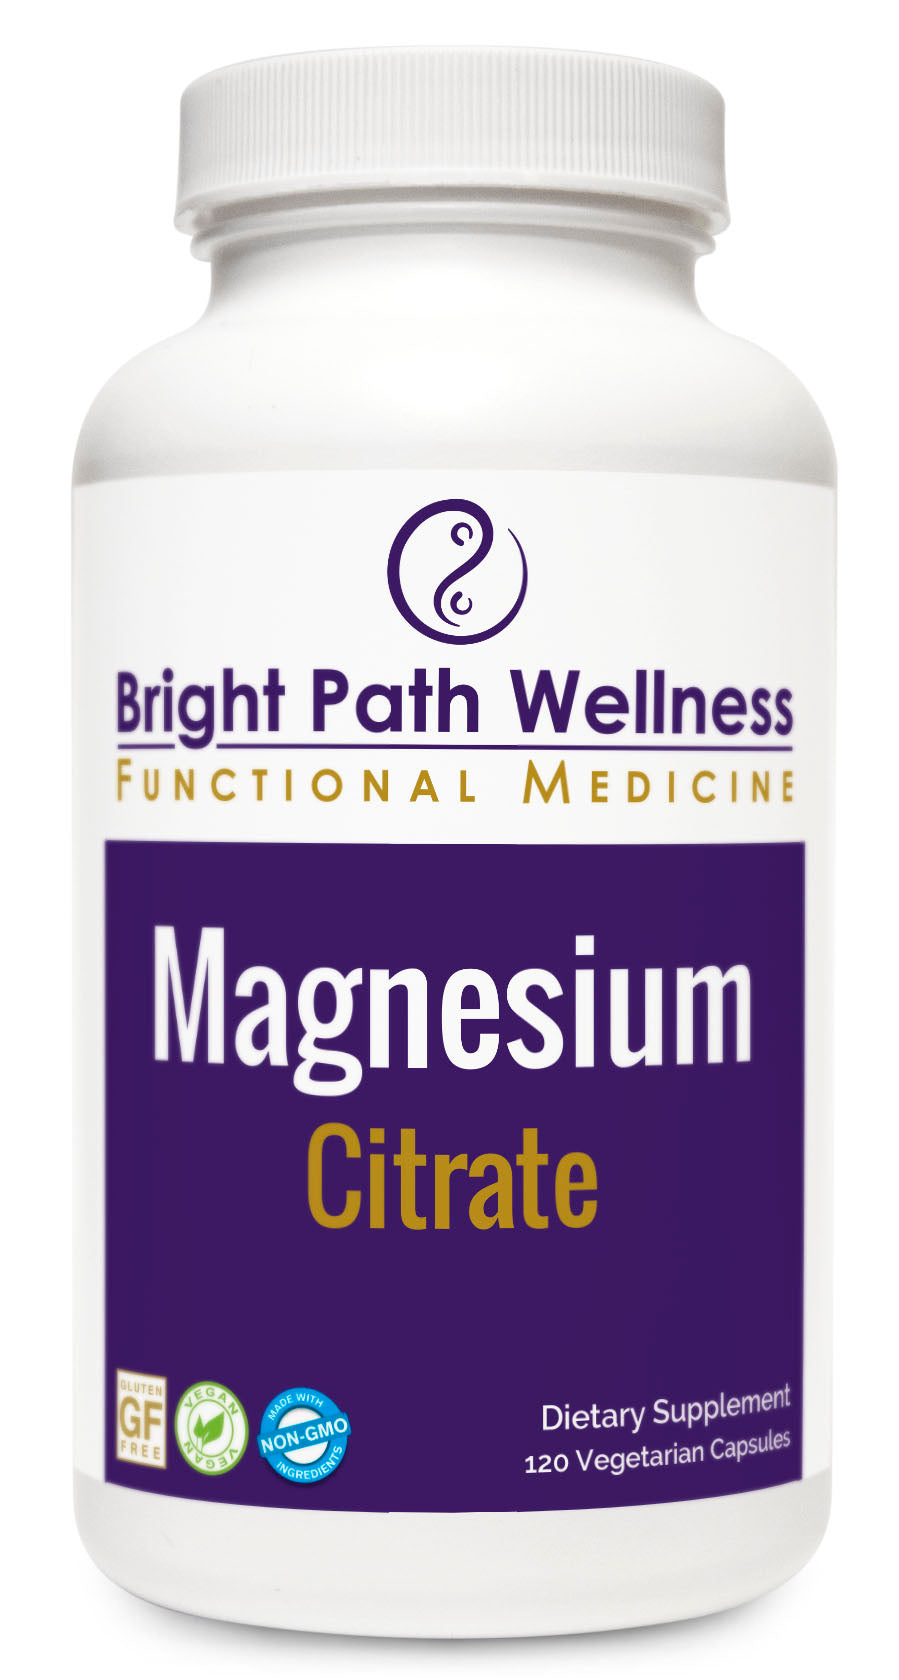 Magnesium Citrate: application in medicine